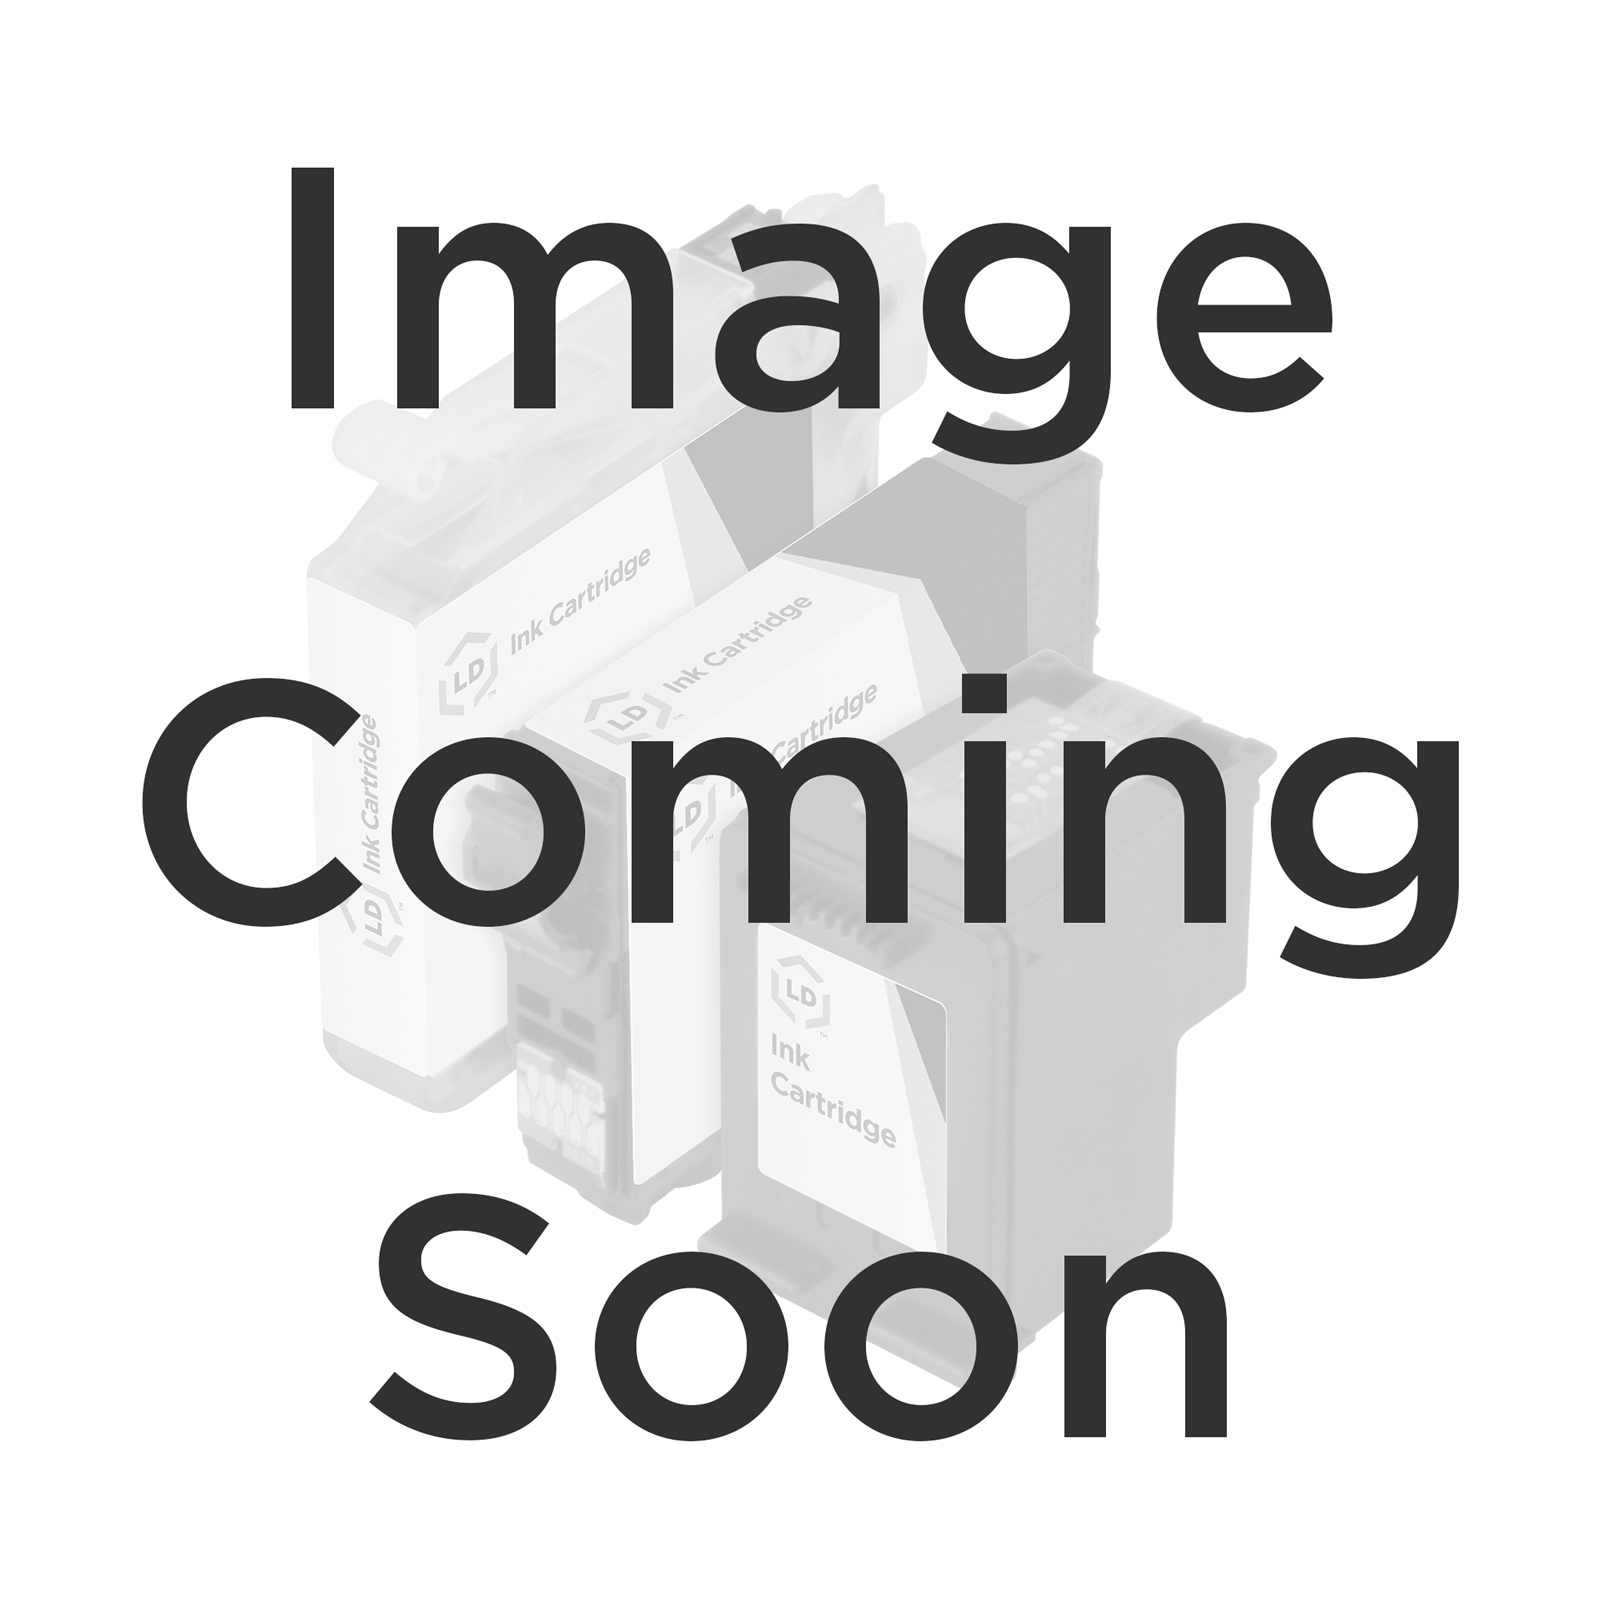 PM SecurIT $100 Coin Box (Nickels) - 1200 per carton